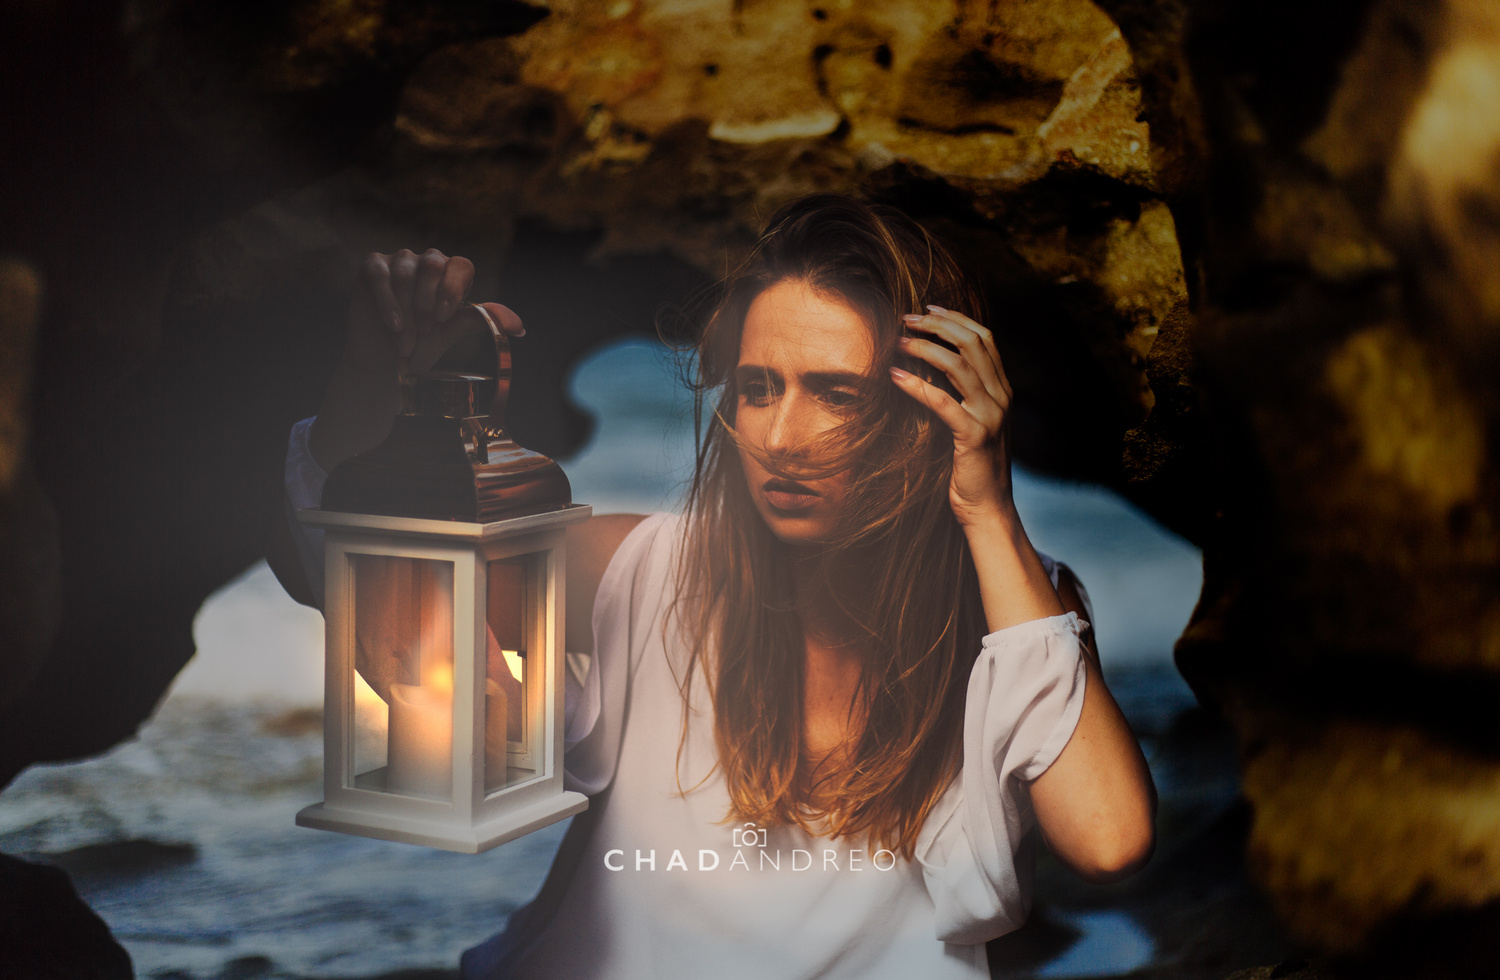 Julie K - Exploring by Chad Andreo